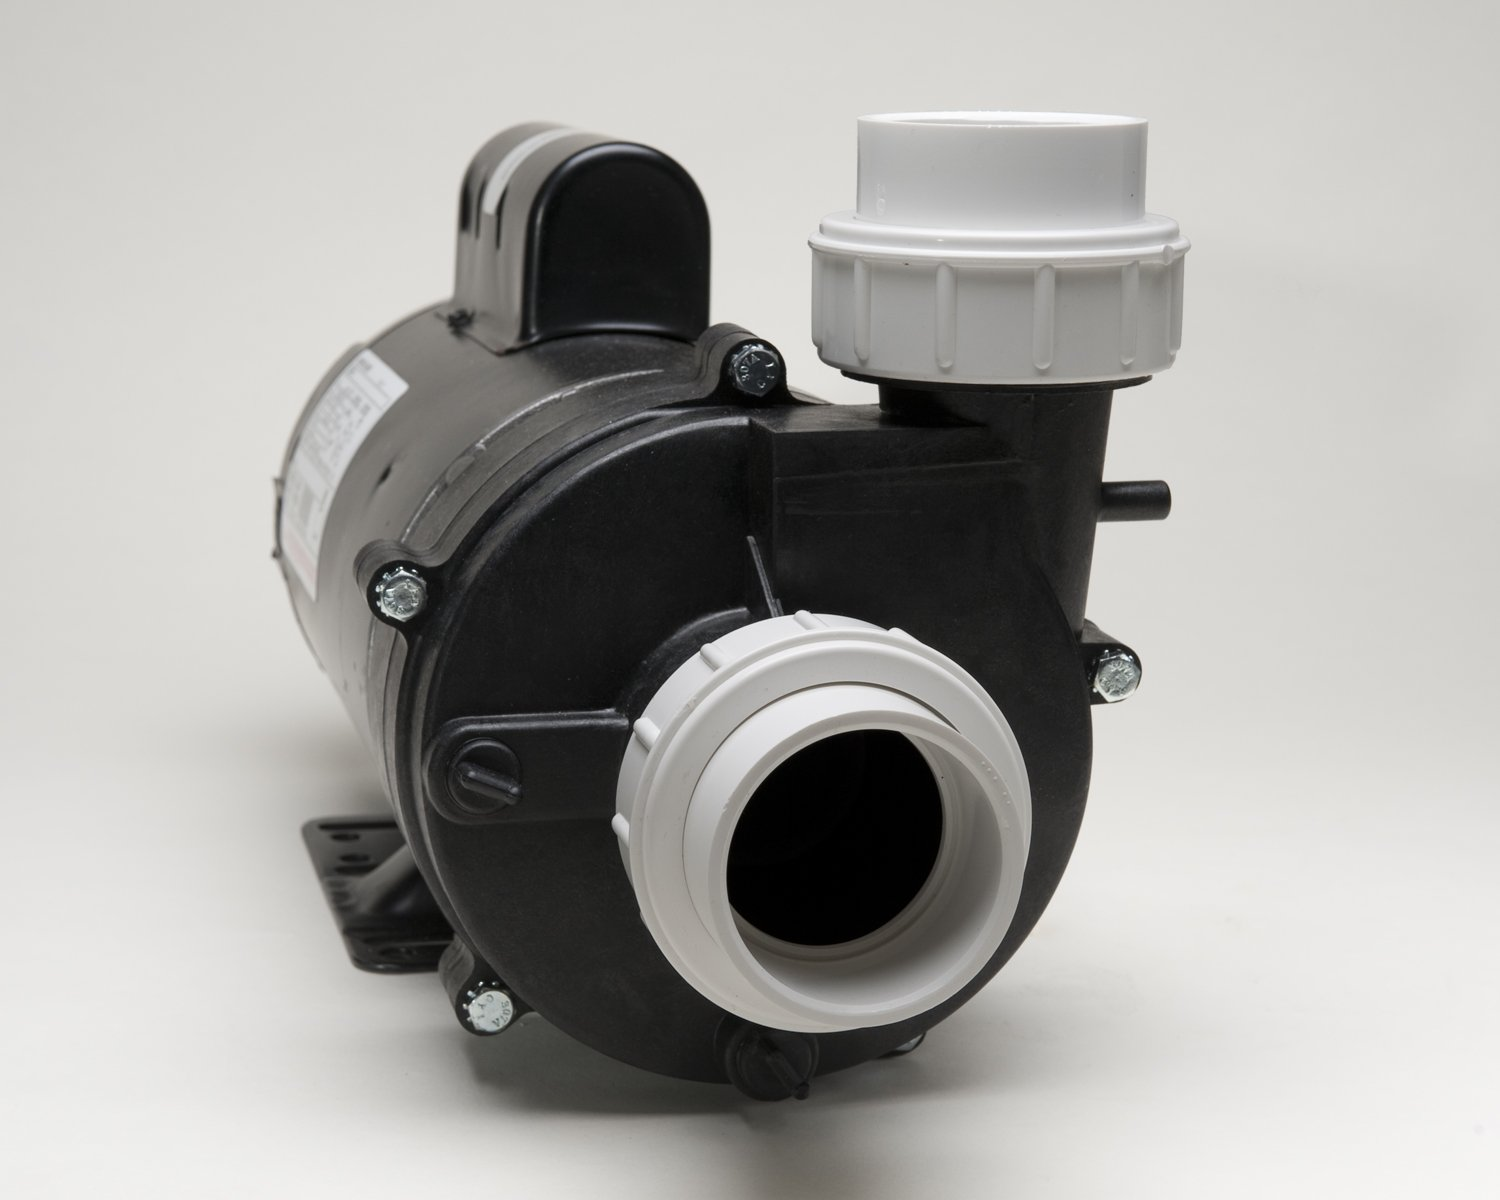 61yNAFK9IqL._SL1500_ amazon com 3 hp spa pump vico ultimax by ultrajet balboa  at gsmx.co